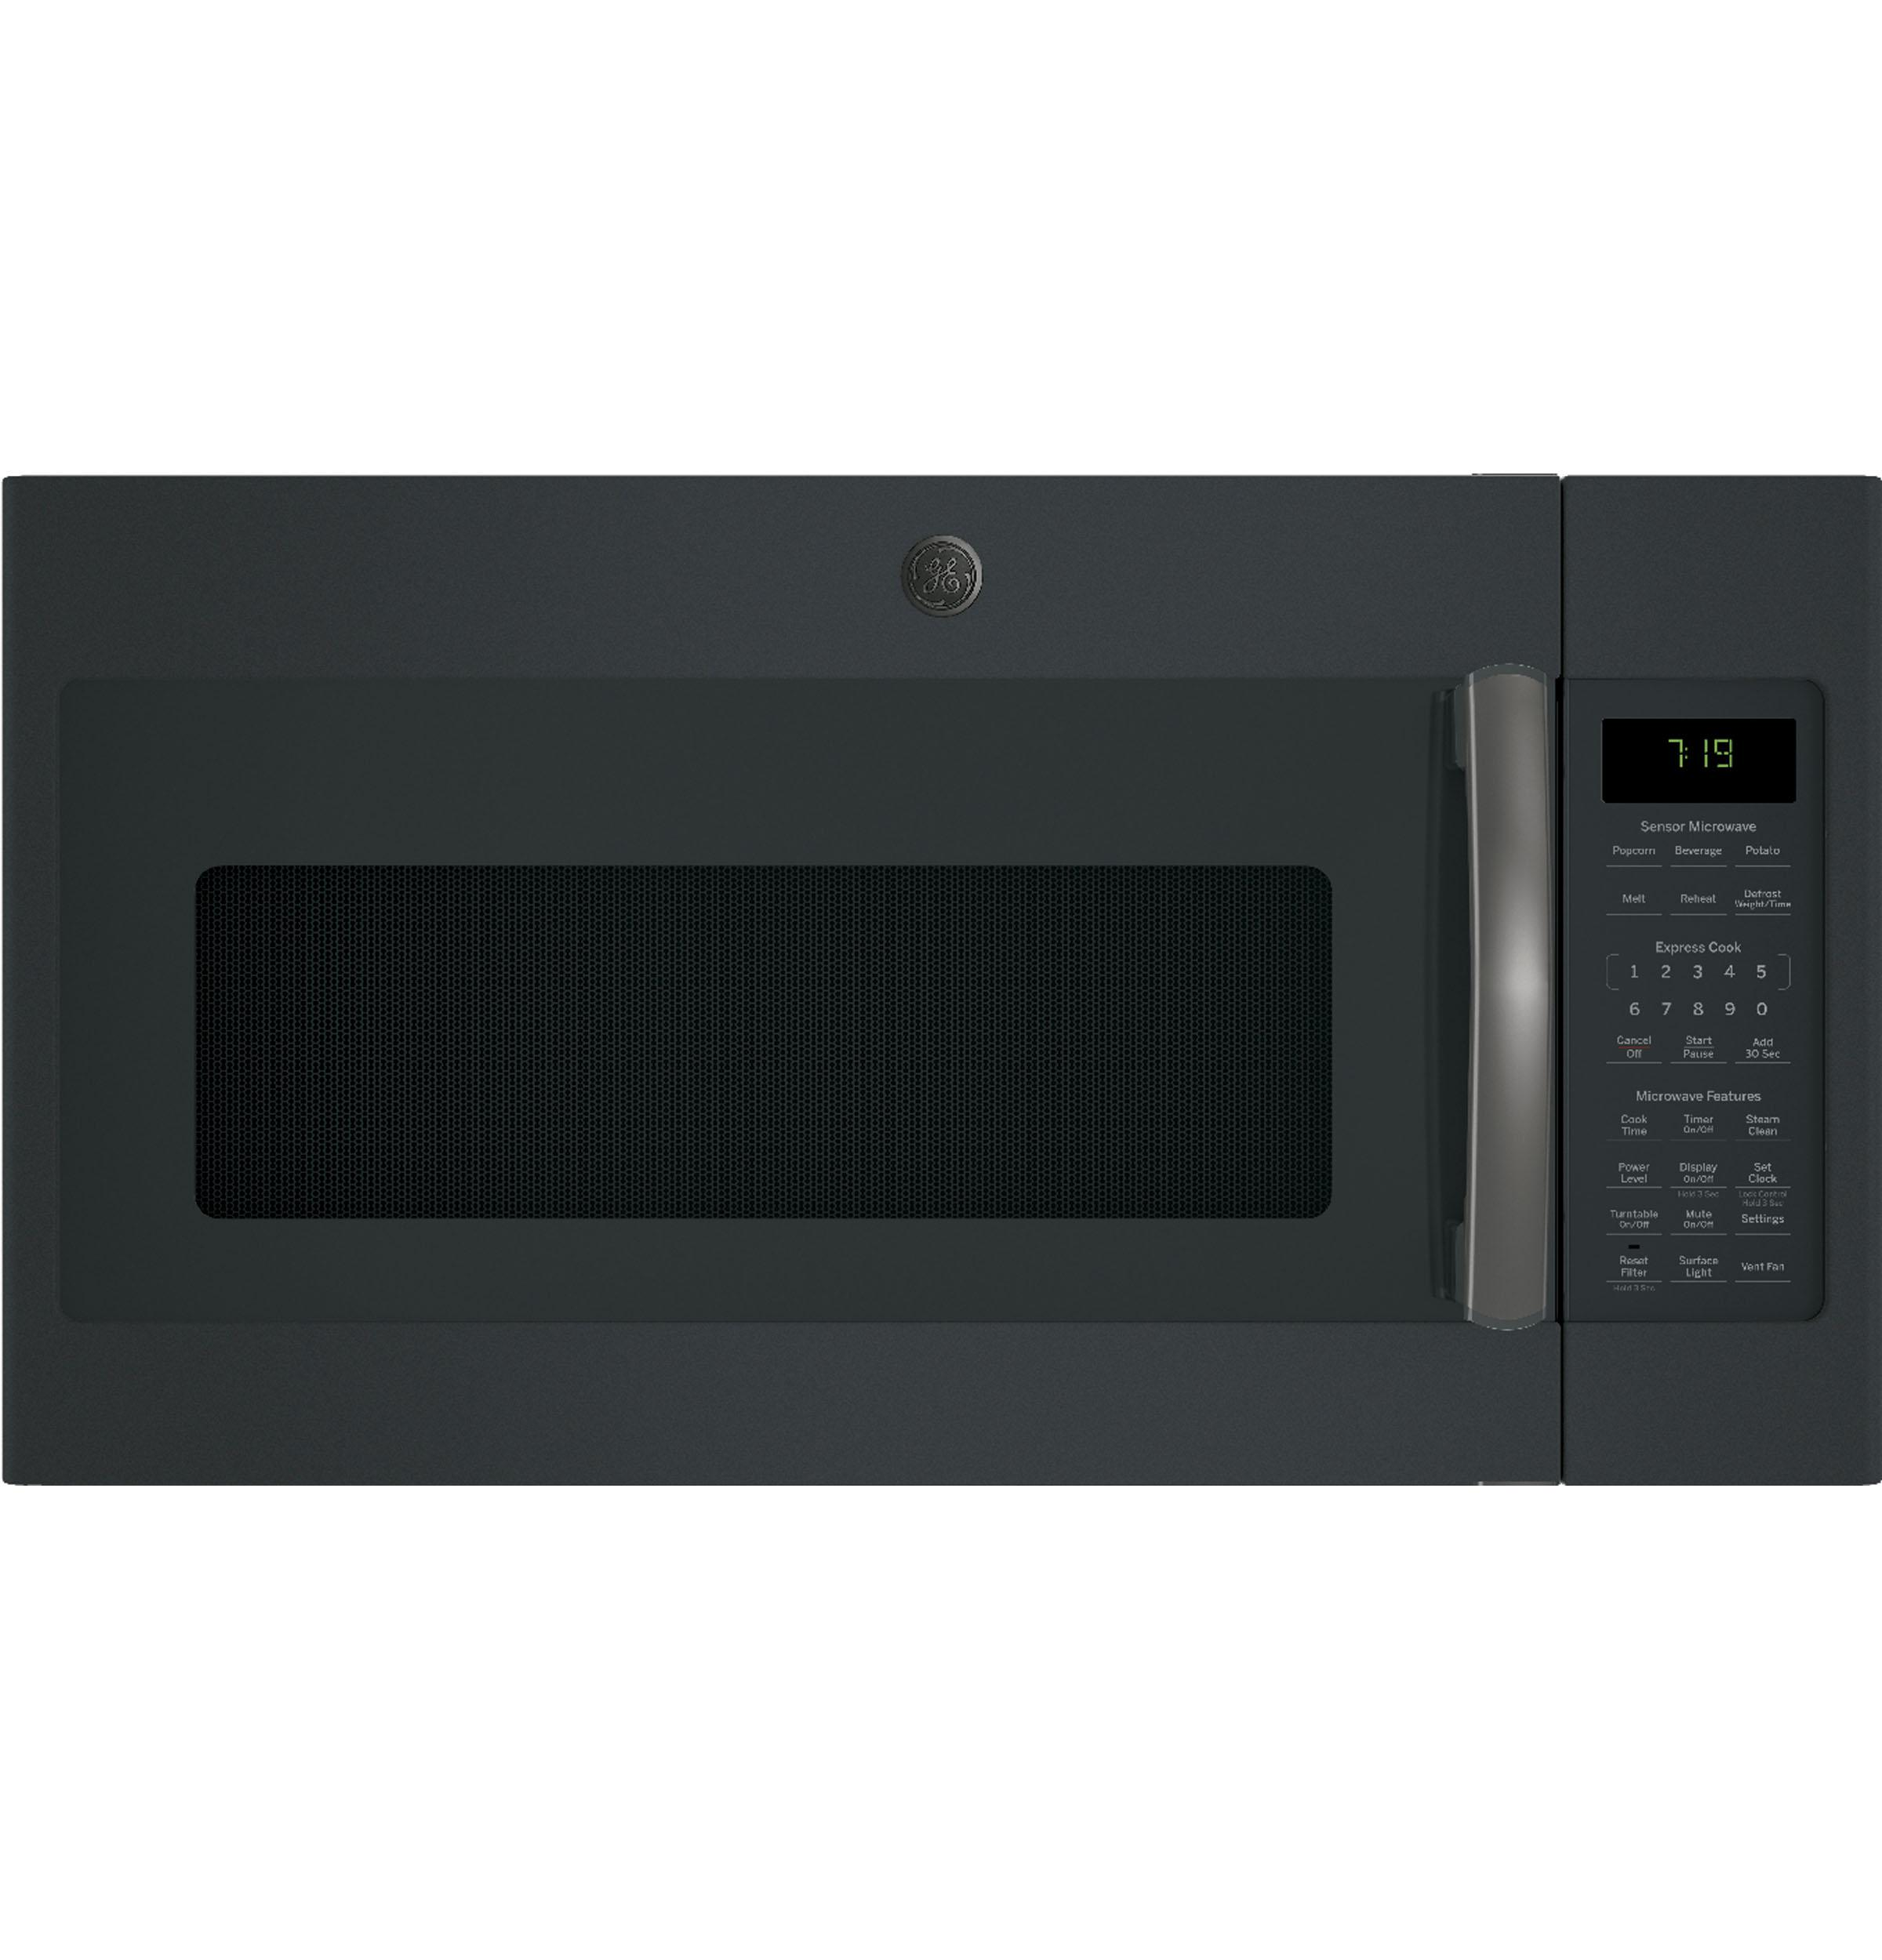 JNM7196FLDSGE ®1 9 Cu  Ft  Over-the-Range Sensor Microwave